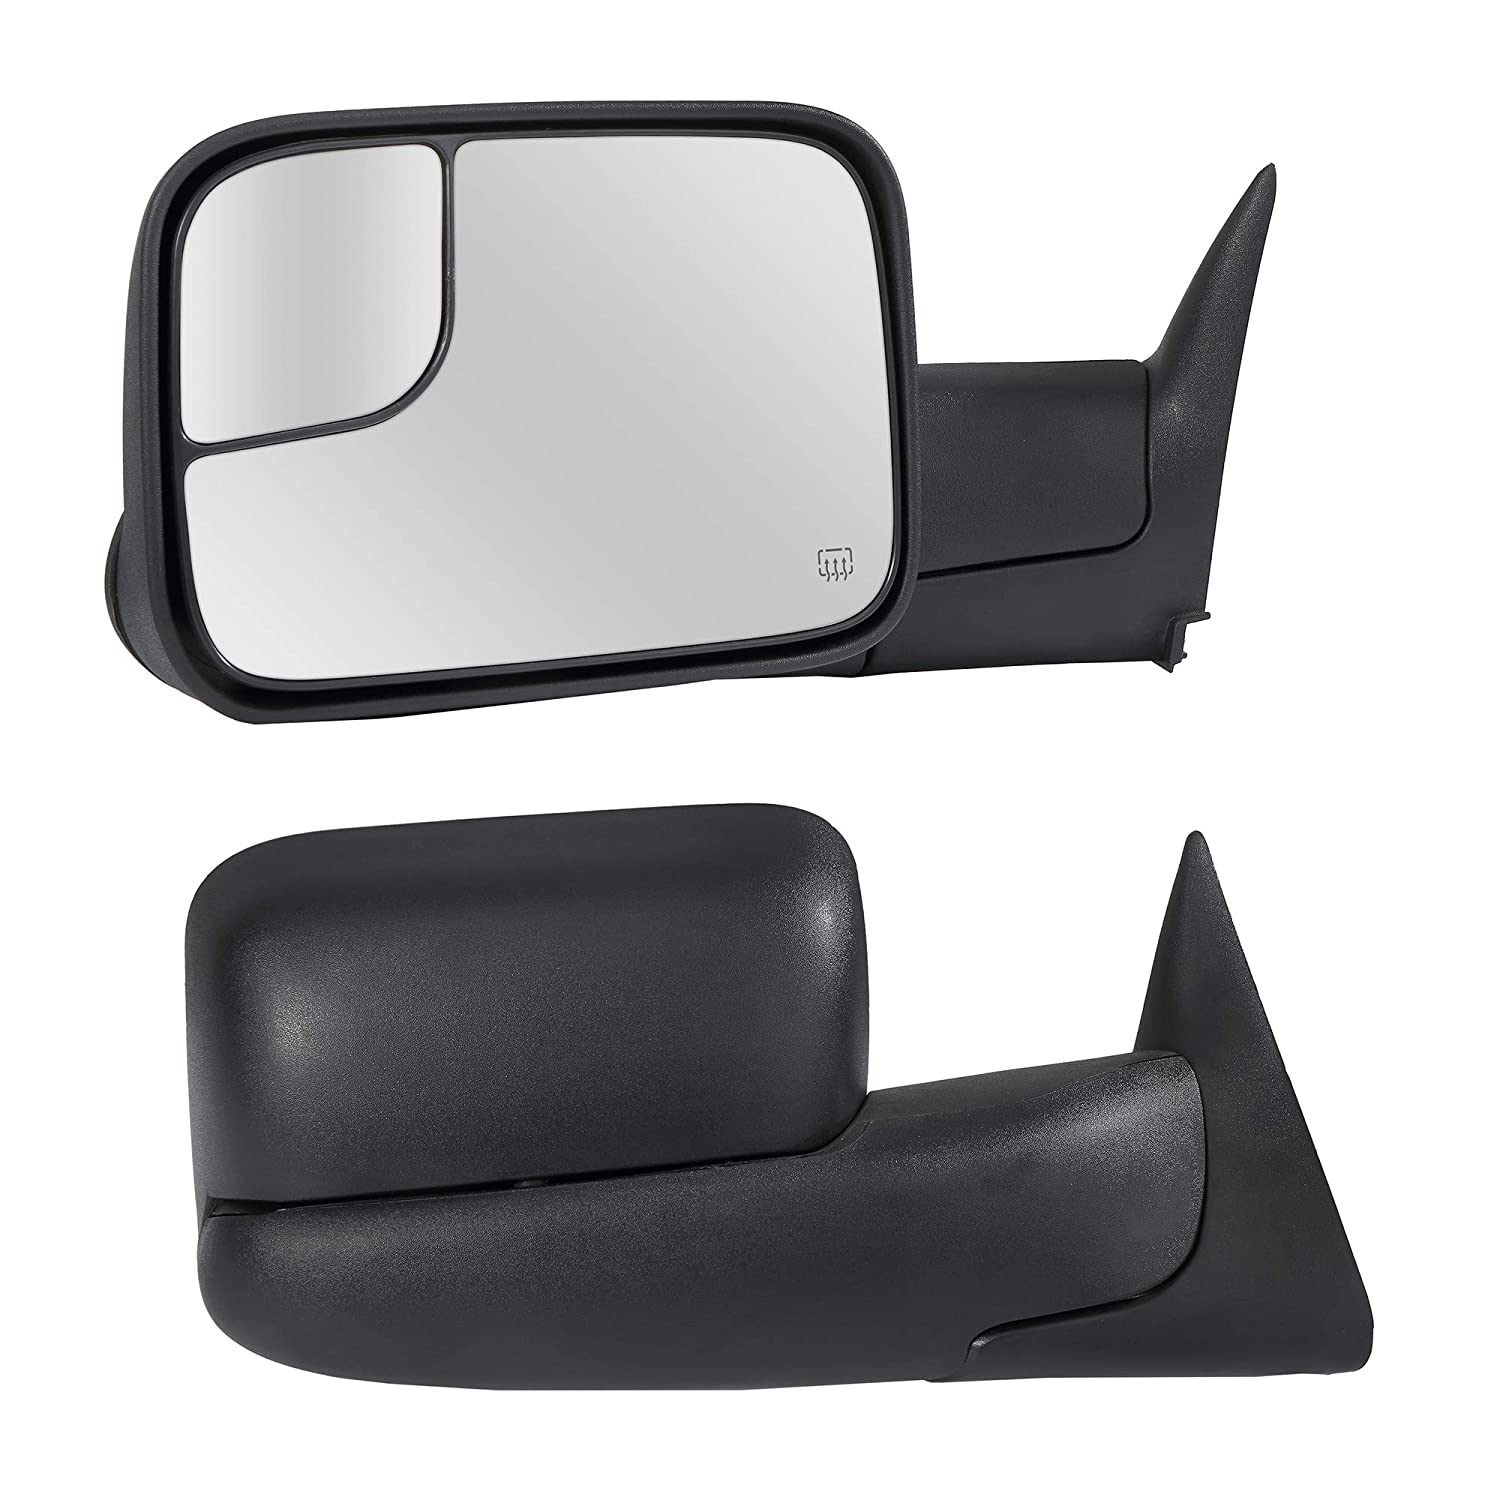 Manual Folding Dependable Direct Towing Mirrors Passenger /& Driver Side Power Operated With Black Finish Fits 94-97 Dodge Ram 1500 2500 3500 3-Pin Connector